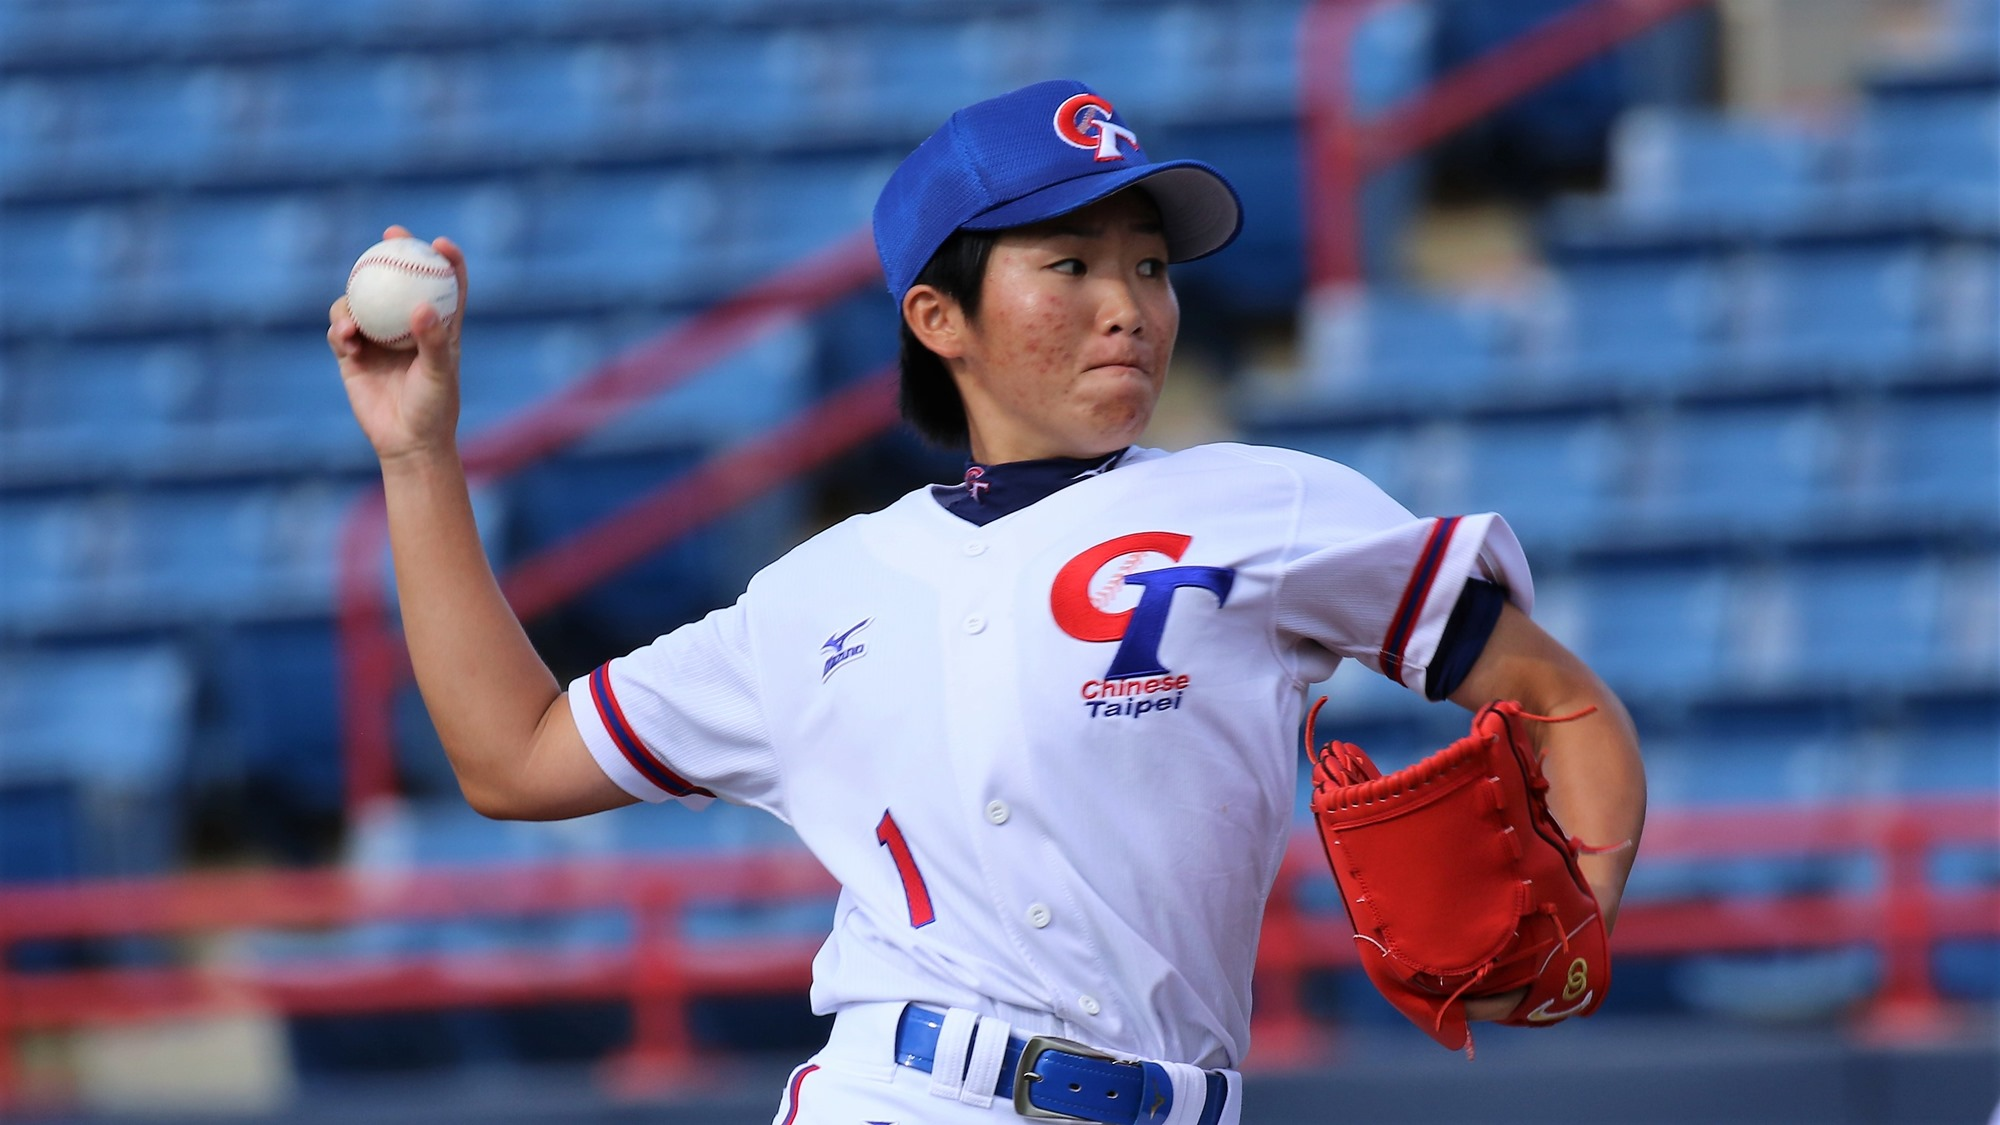 Hsieh Yu Ying went eight innings and grabbed the win for Chinese Taipei